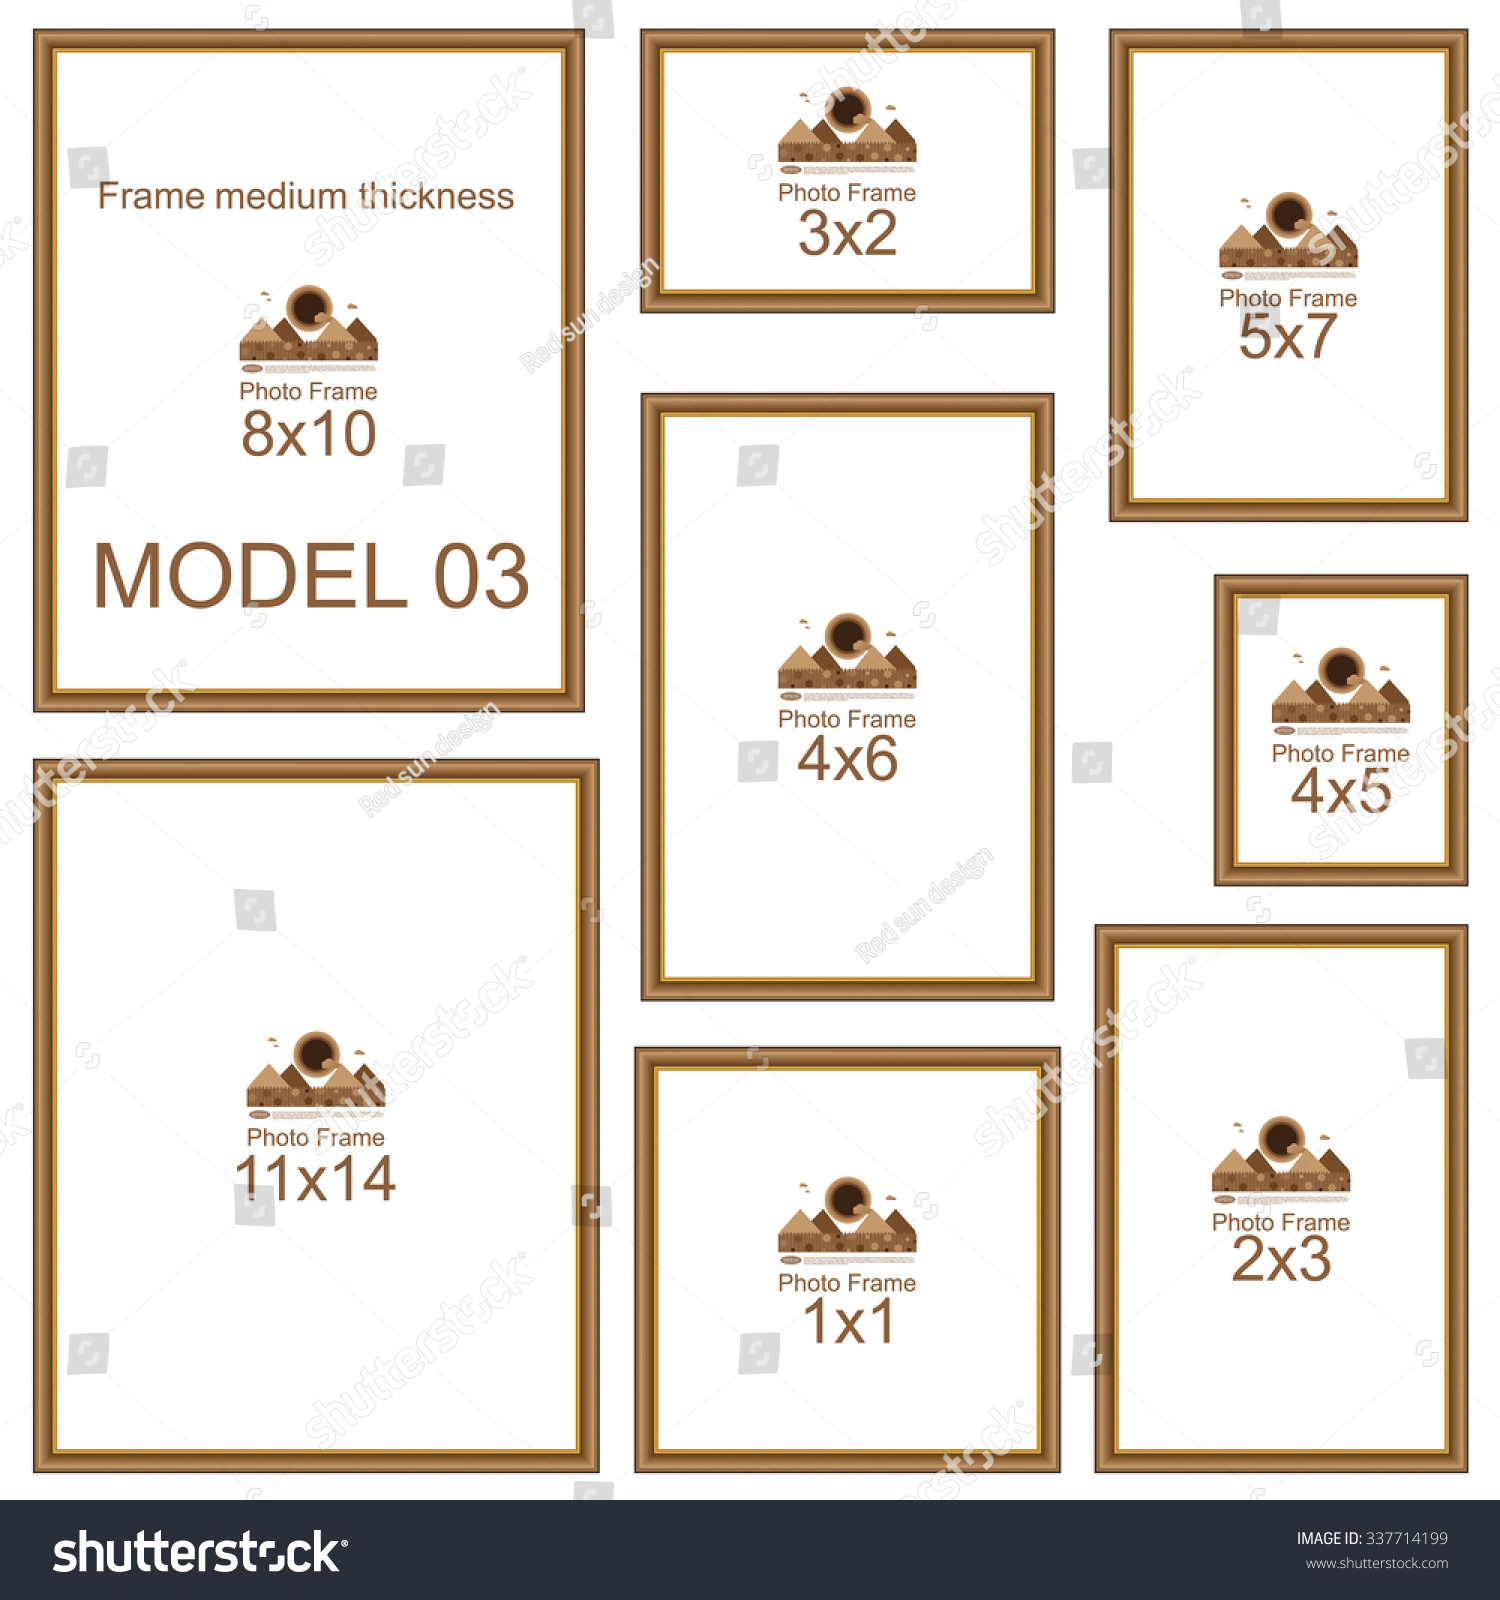 Popular Picture Frame Sizes. Wood border. Frame for picture or text ...